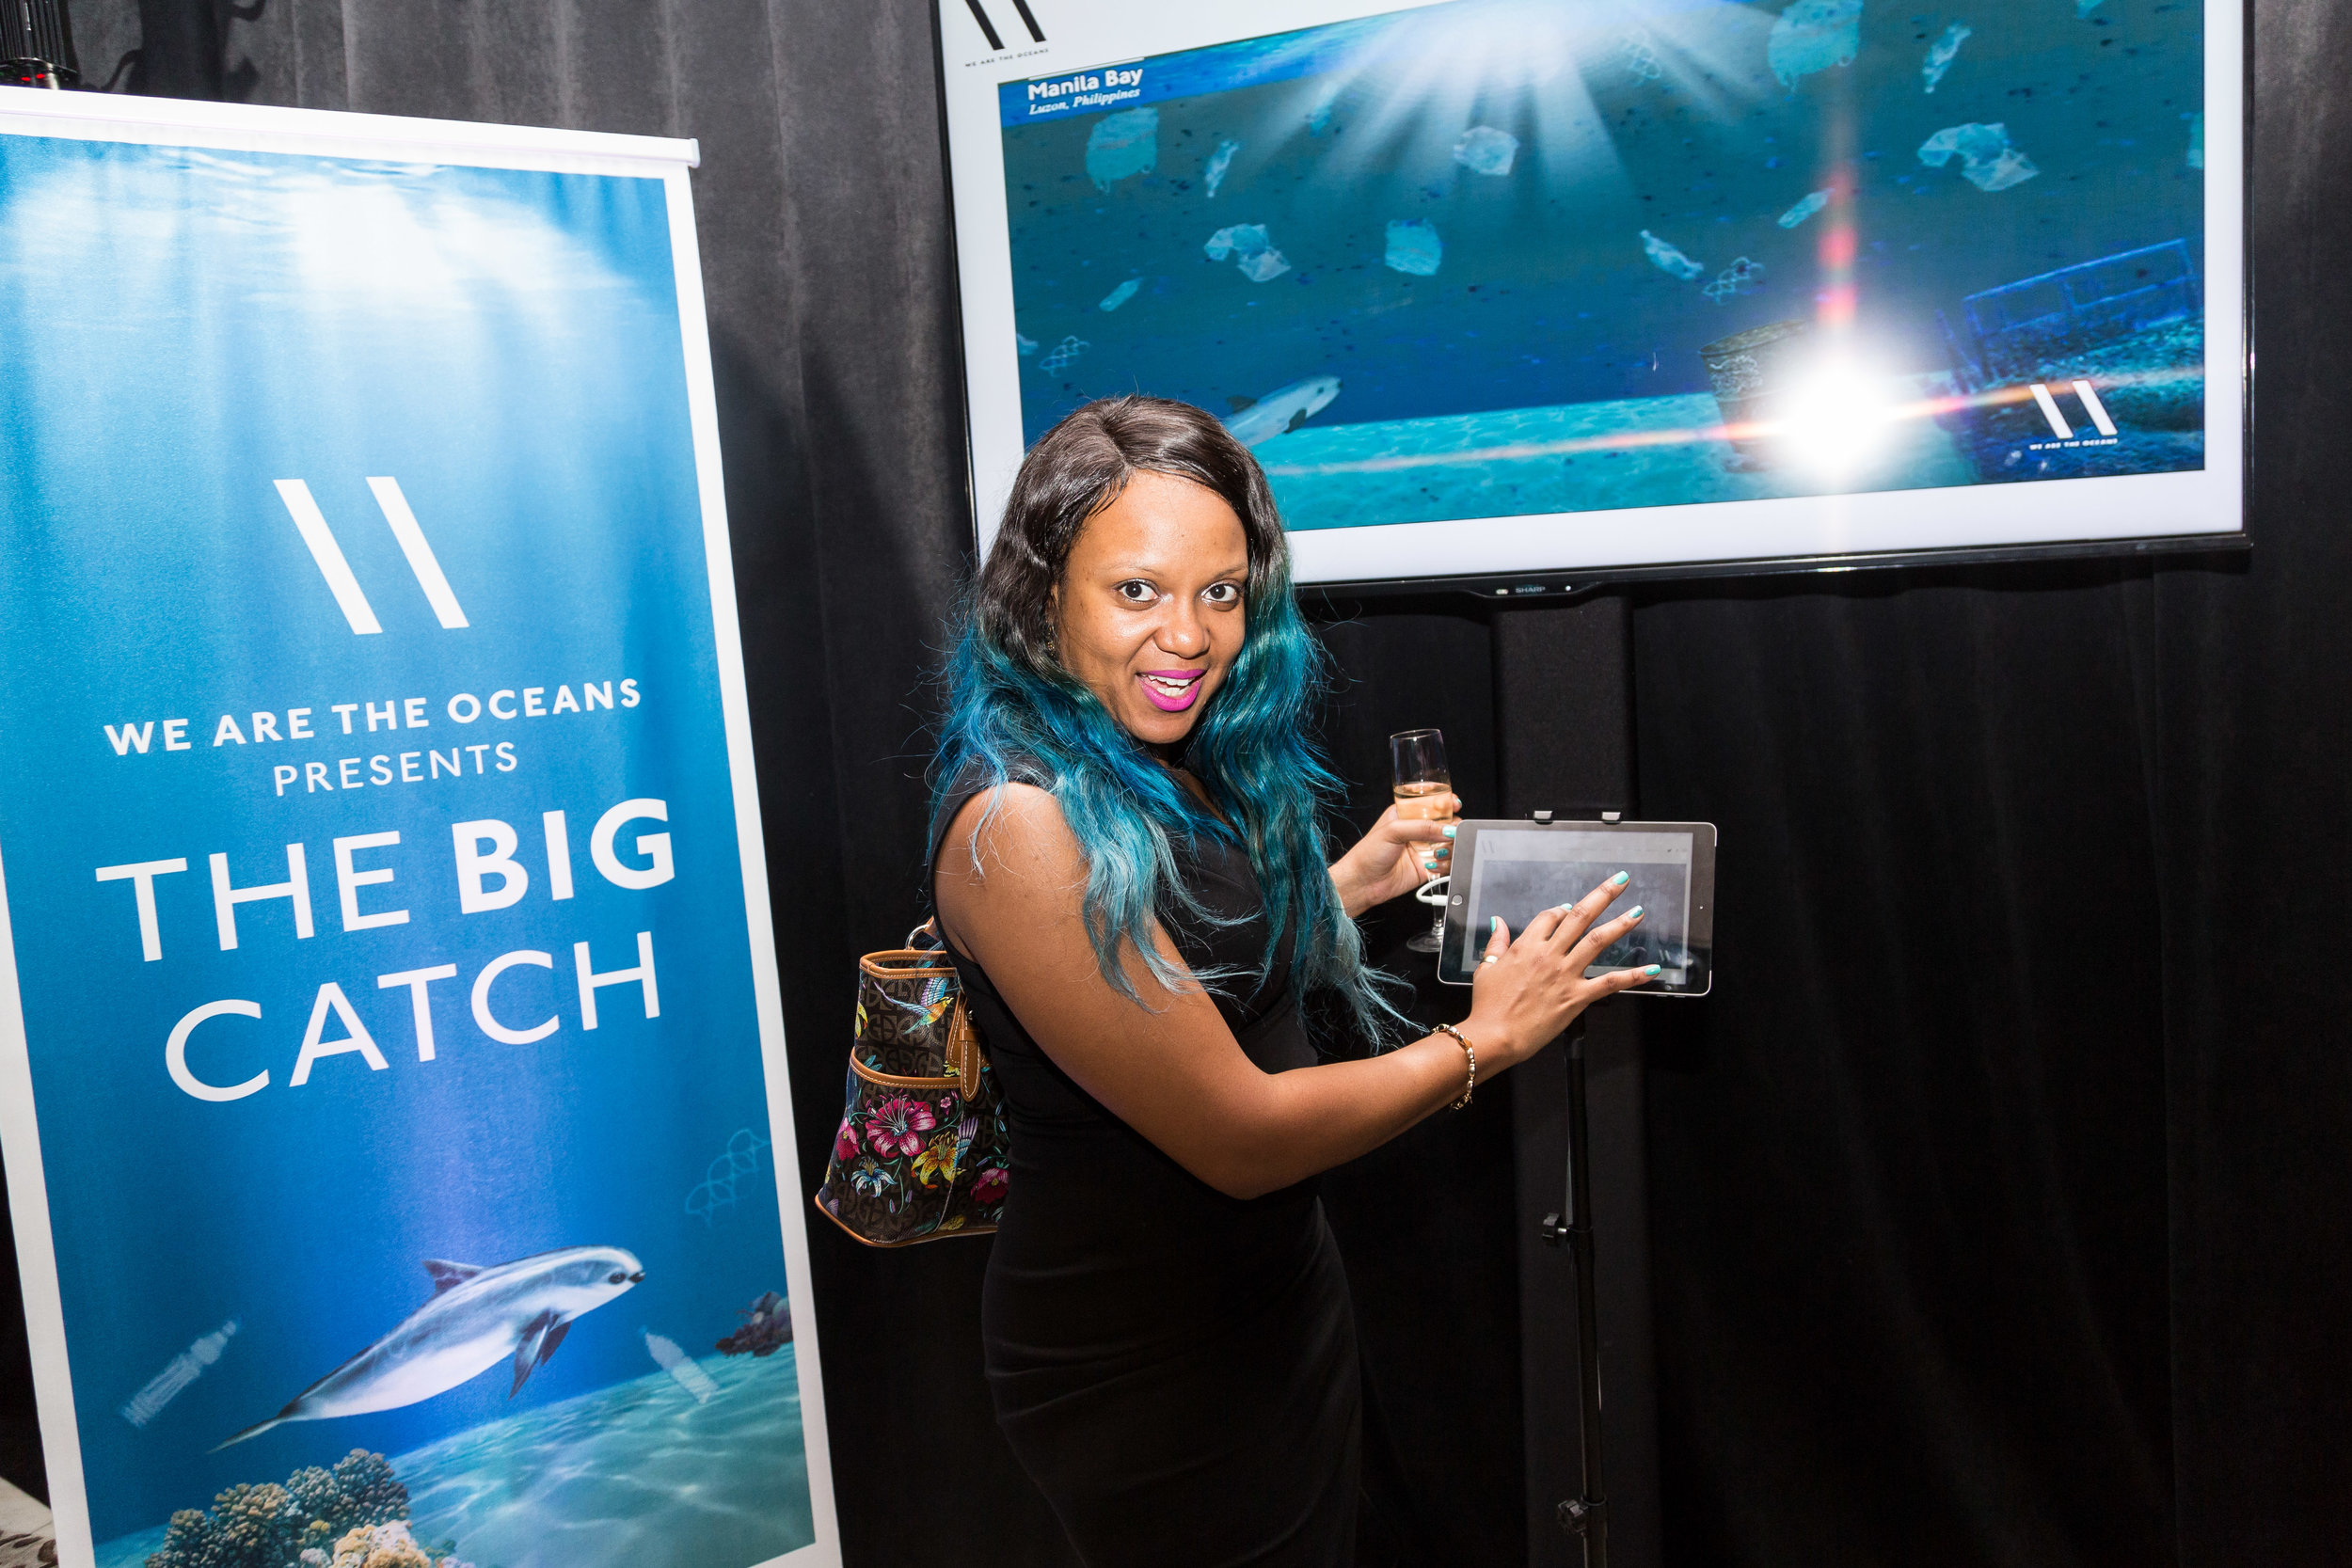 """GUEST HELPS CLEAN UP THE OCEANS IN """"THE BIG CATCH"""" GAME"""